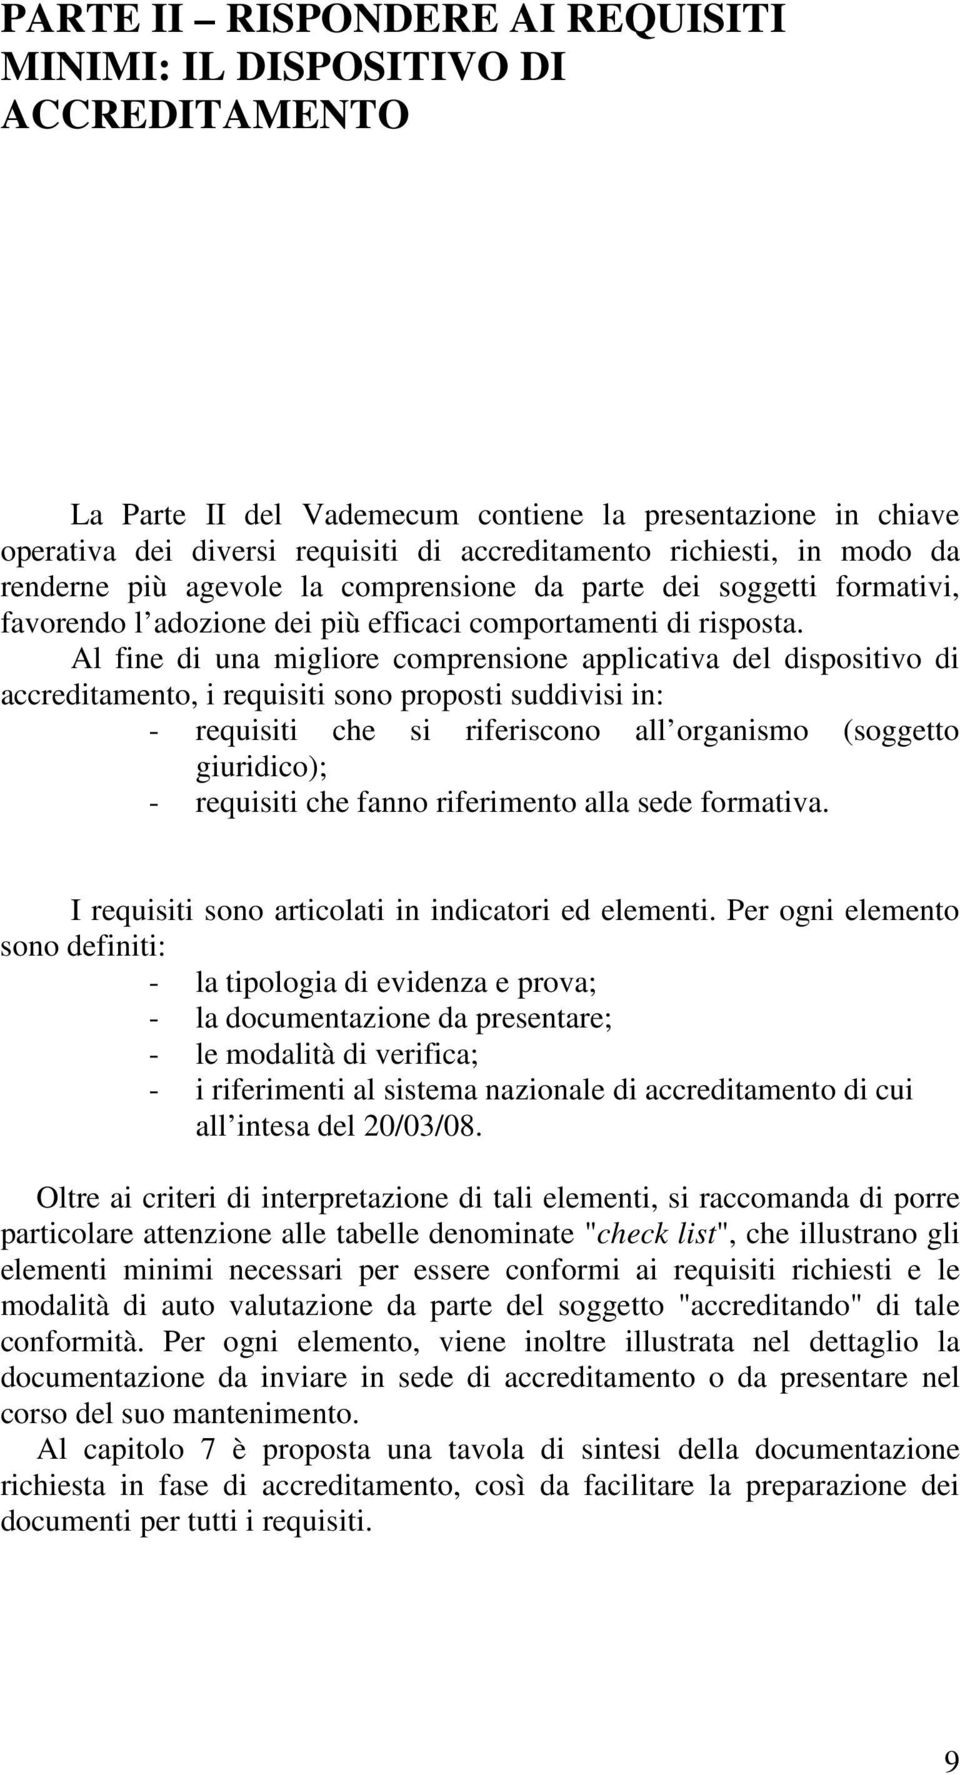 Al fine di una miglire cmprensine applicativa del dispsitiv di accreditament, i requisiti sn prpsti suddivisi in: - requisiti che si riferiscn all rganism (sggett giuridic); - requisiti che fann